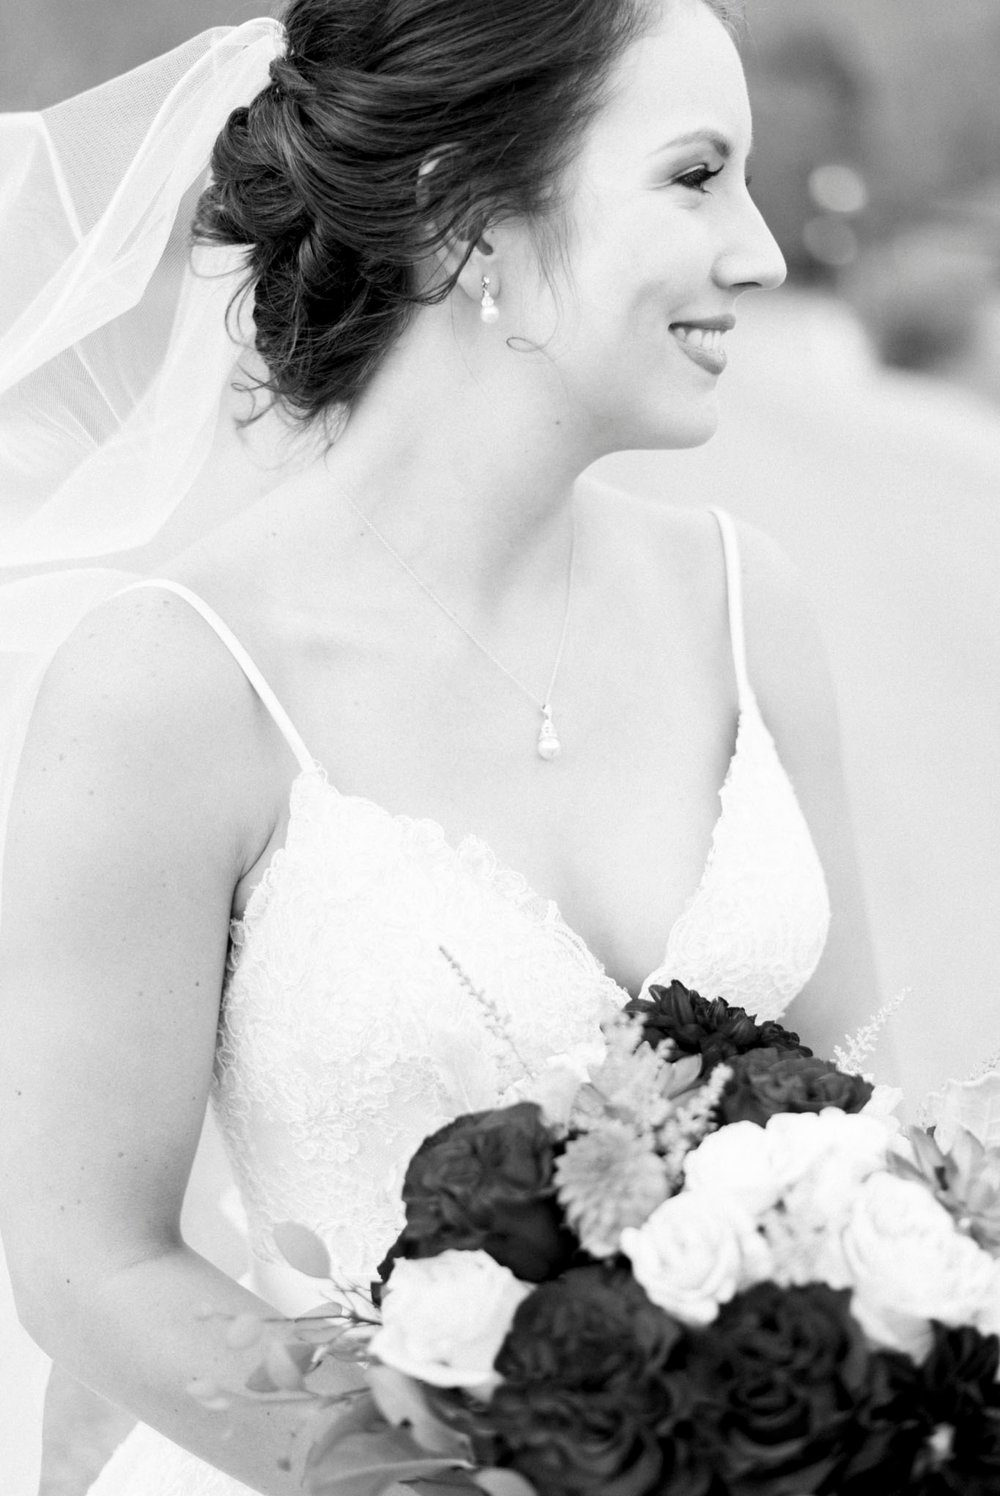 IrvineEstate_LexingtonVA_Wedding_FallWedding_VirginiaWeddingPhotographer 46.jpg